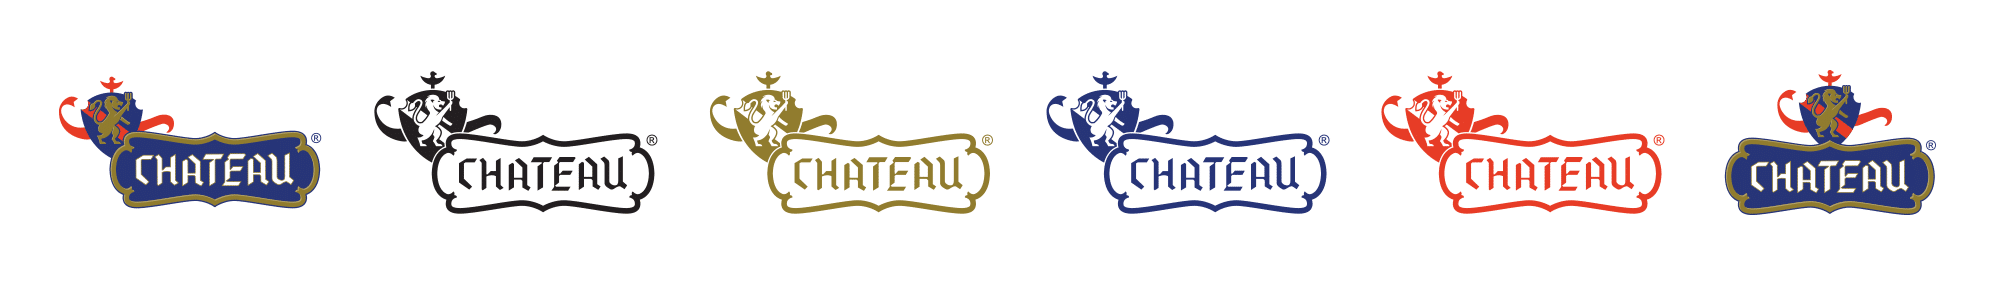 Chateau logo design upgrade lockups